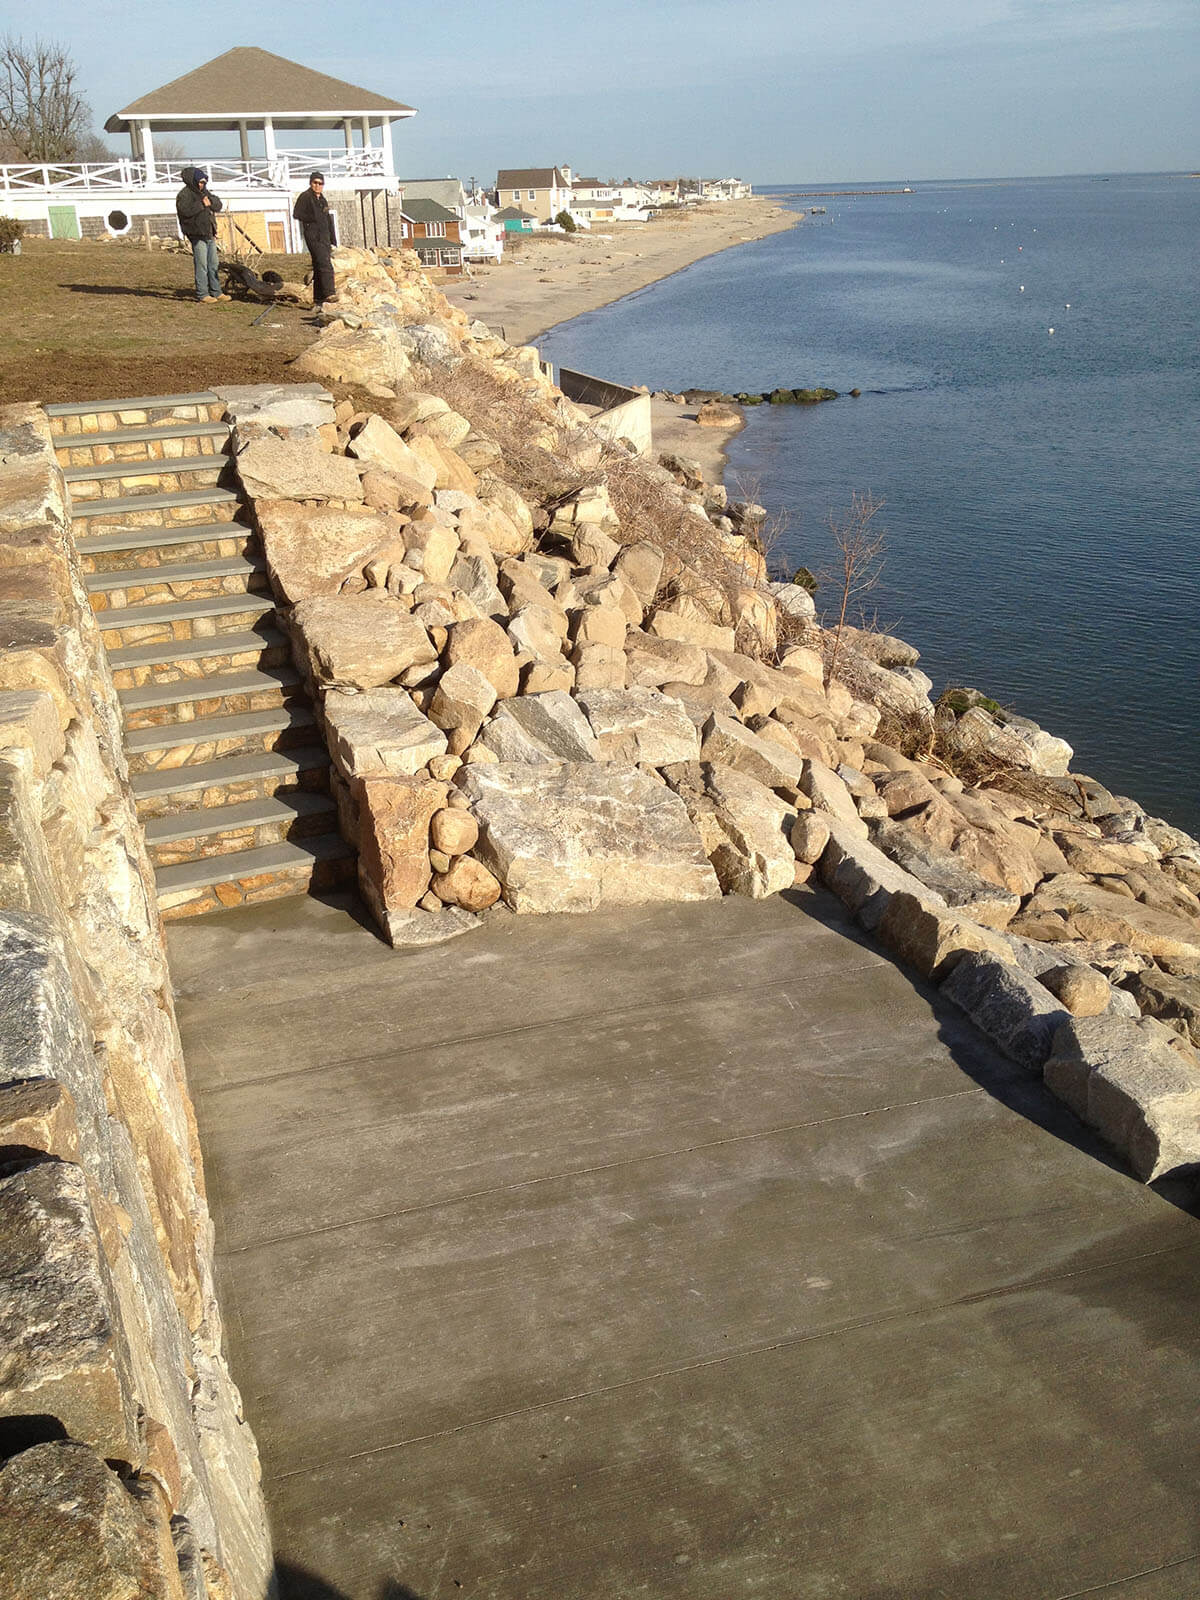 Patio and stairs inset in revetment